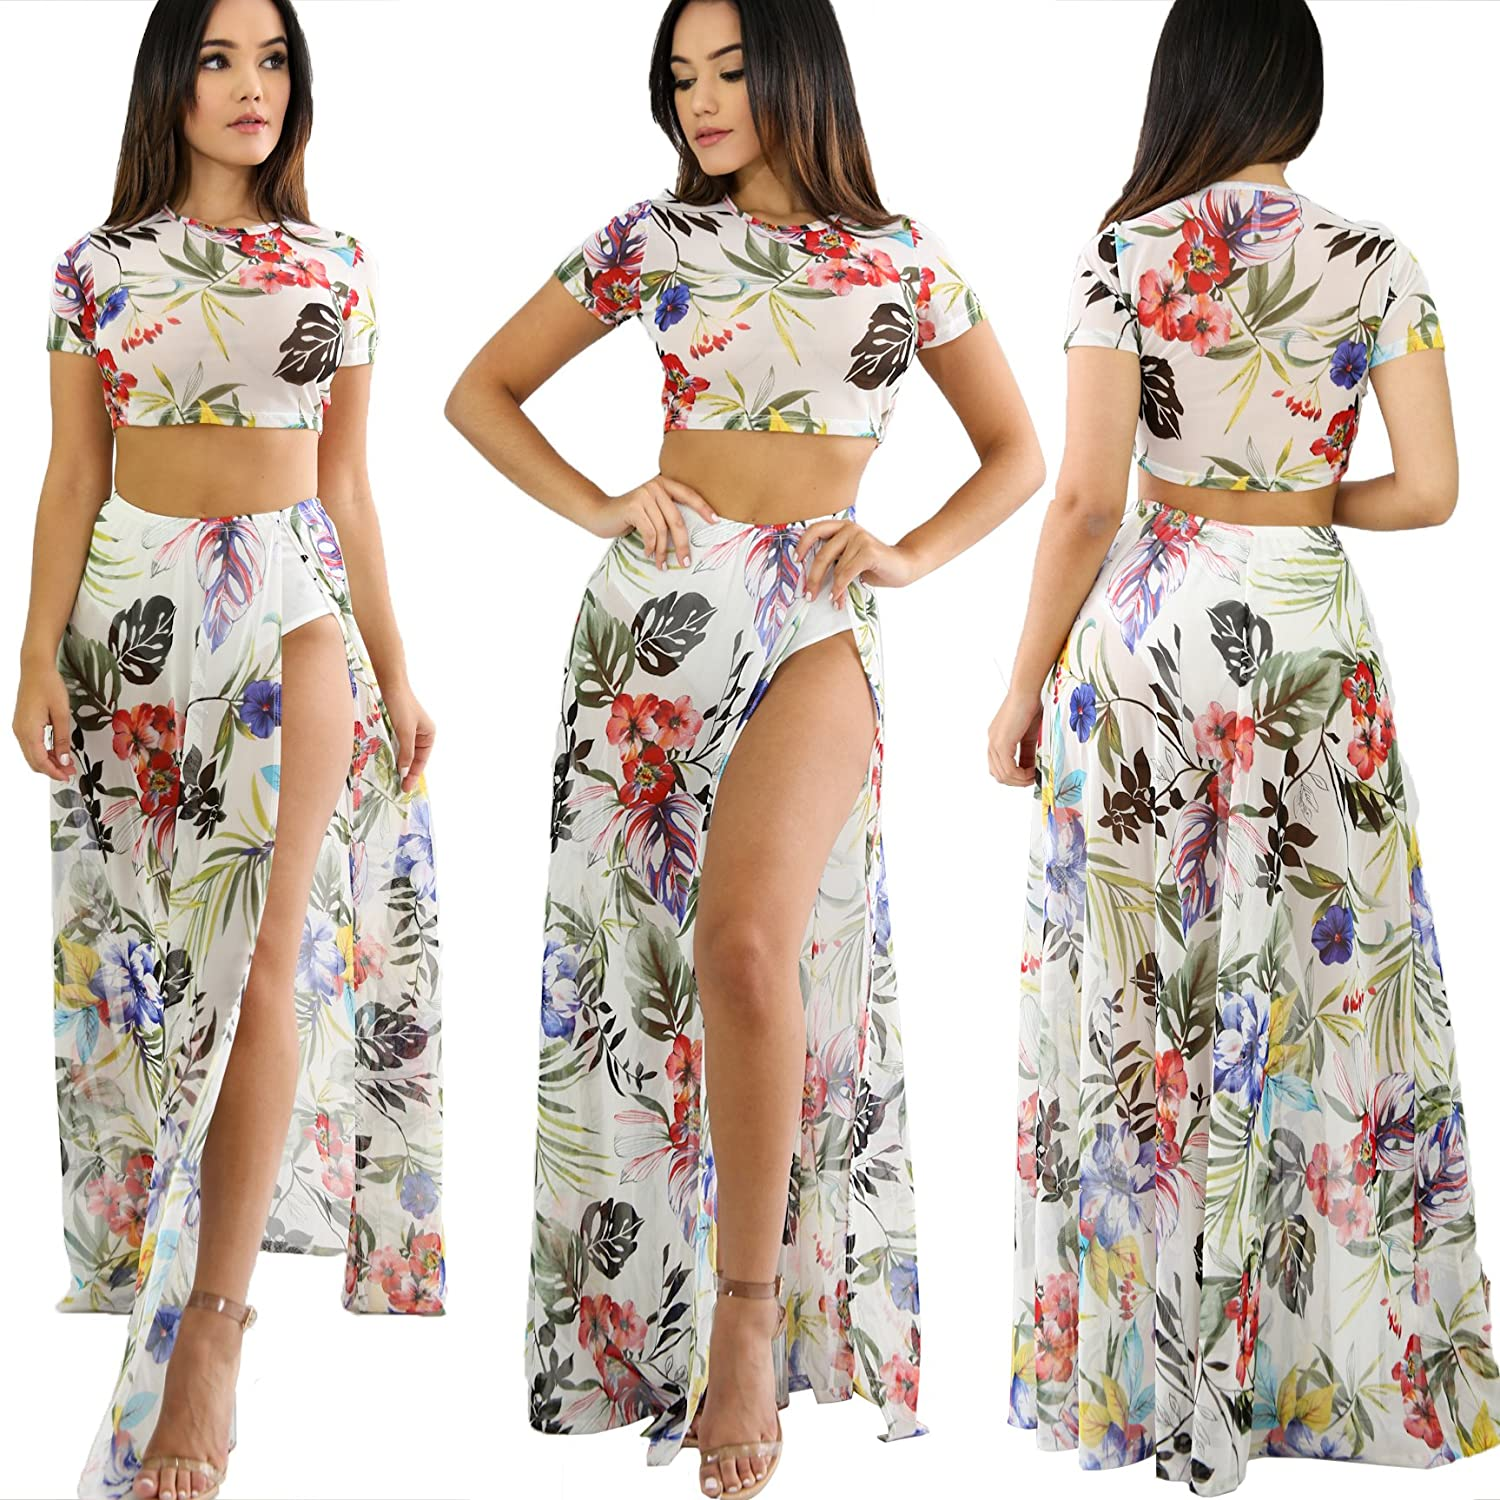 ec76f0a09a Chicmay Womens Sexy Sheer Floral Print 2 Piece Outfits Crop Top Side Split  Skirt Set Maxi Dress at Amazon Women s Clothing store